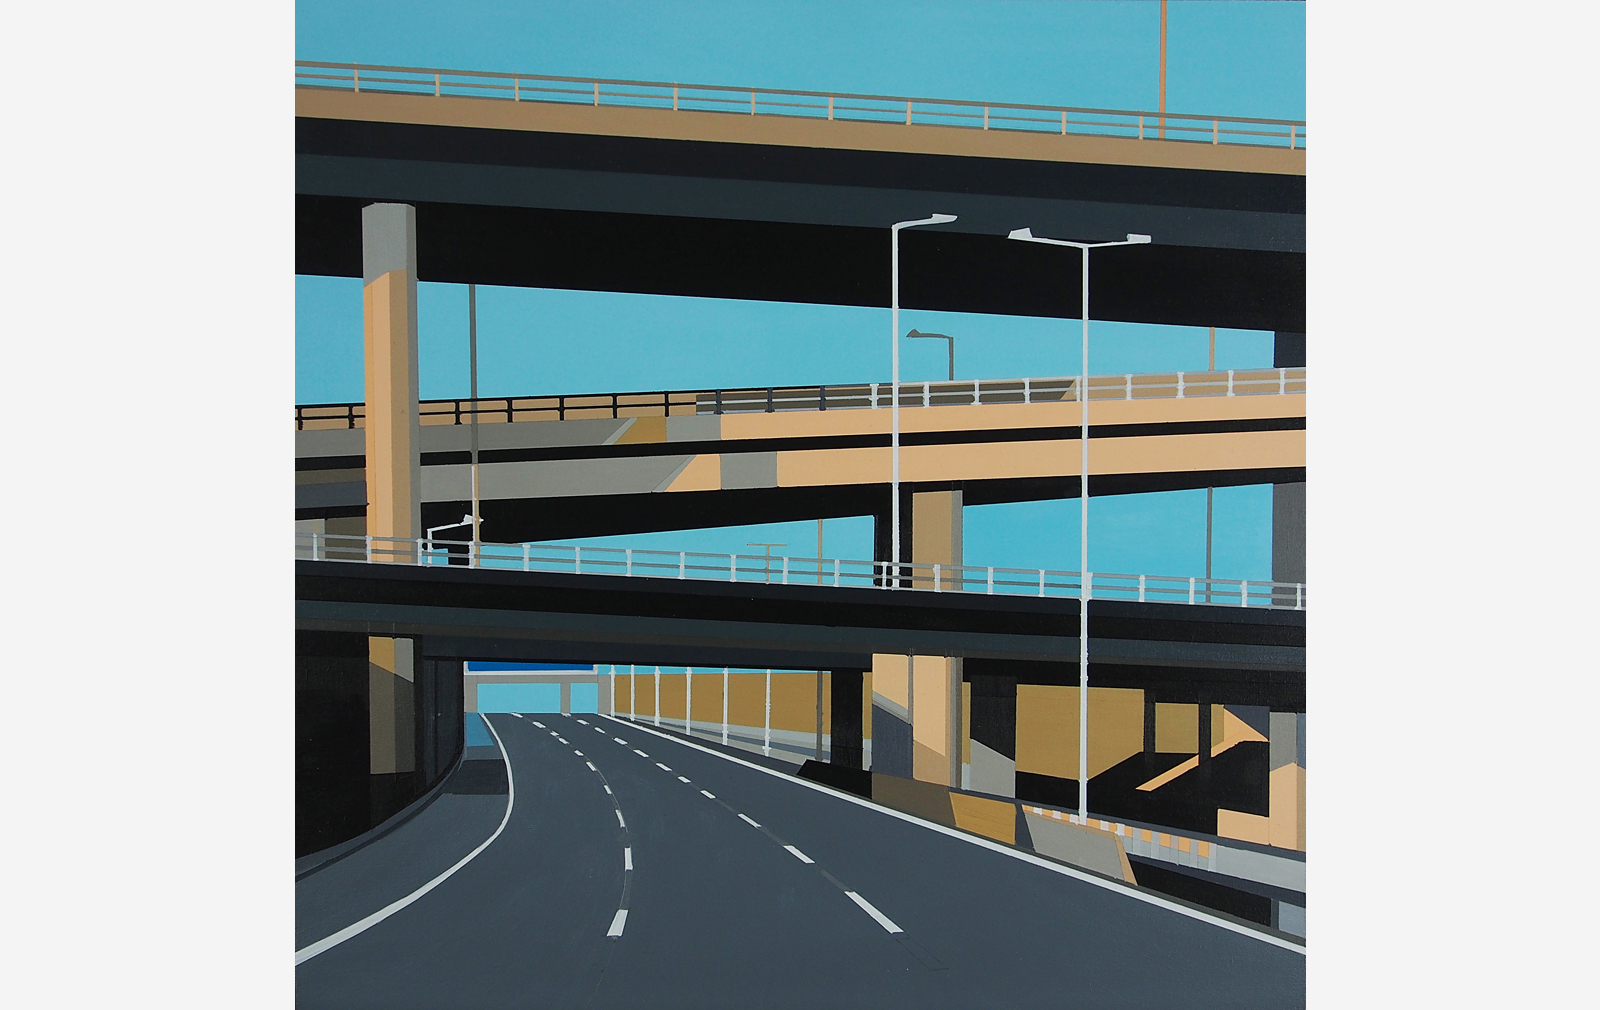 'M25' by Kate Jackson. Part of the series British Road Movies